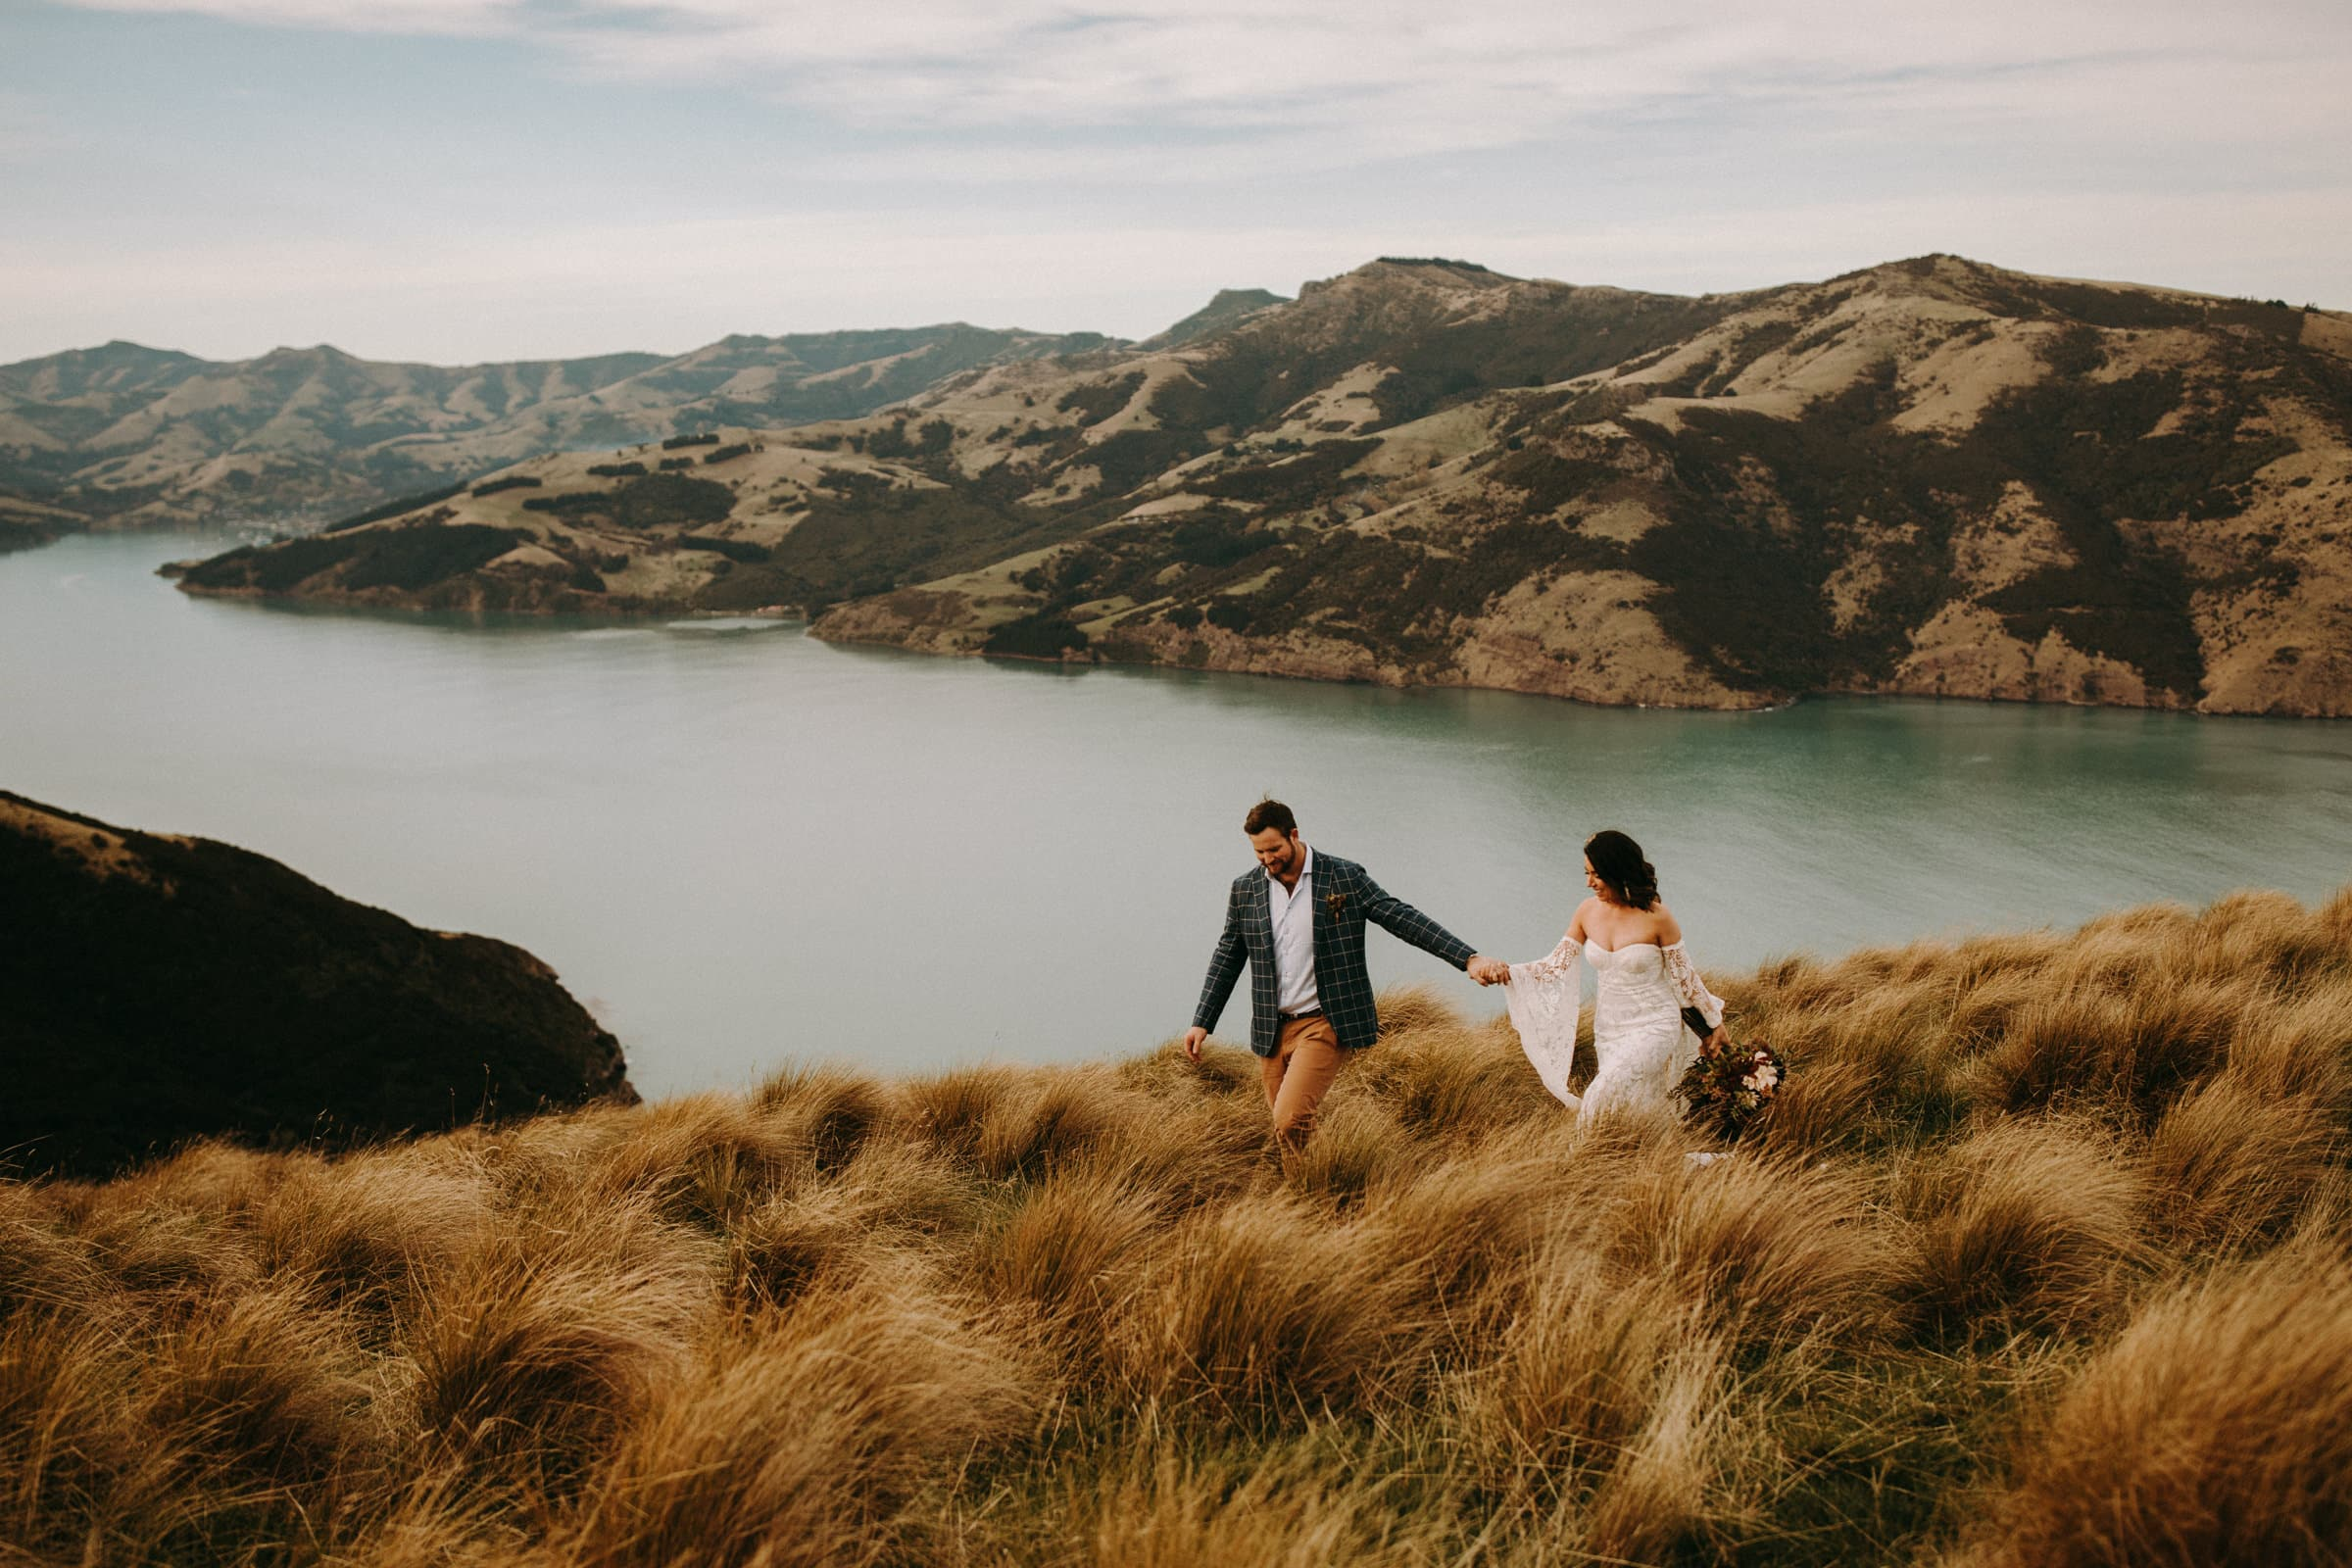 A wedding couple is walking through a meadow with a lake and mountains behind them.